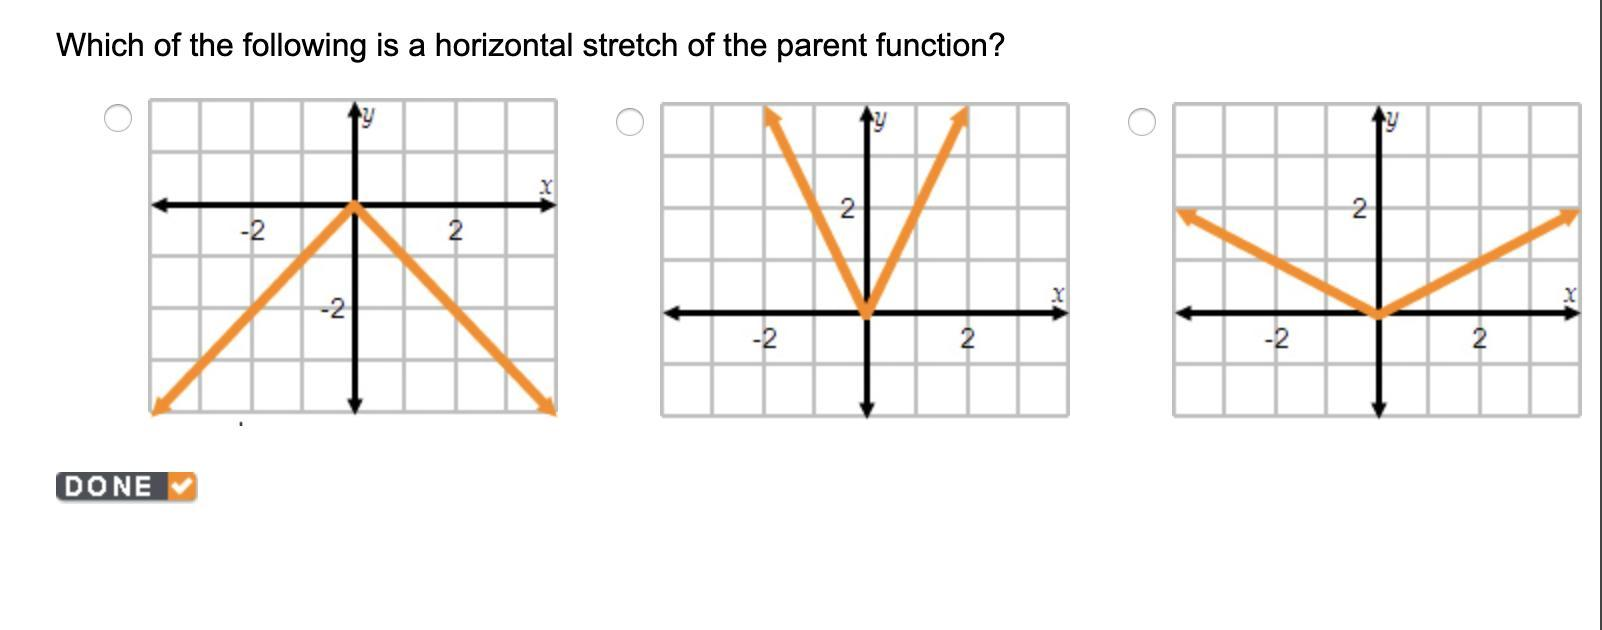 Which of the following is a horizontal stretch of the